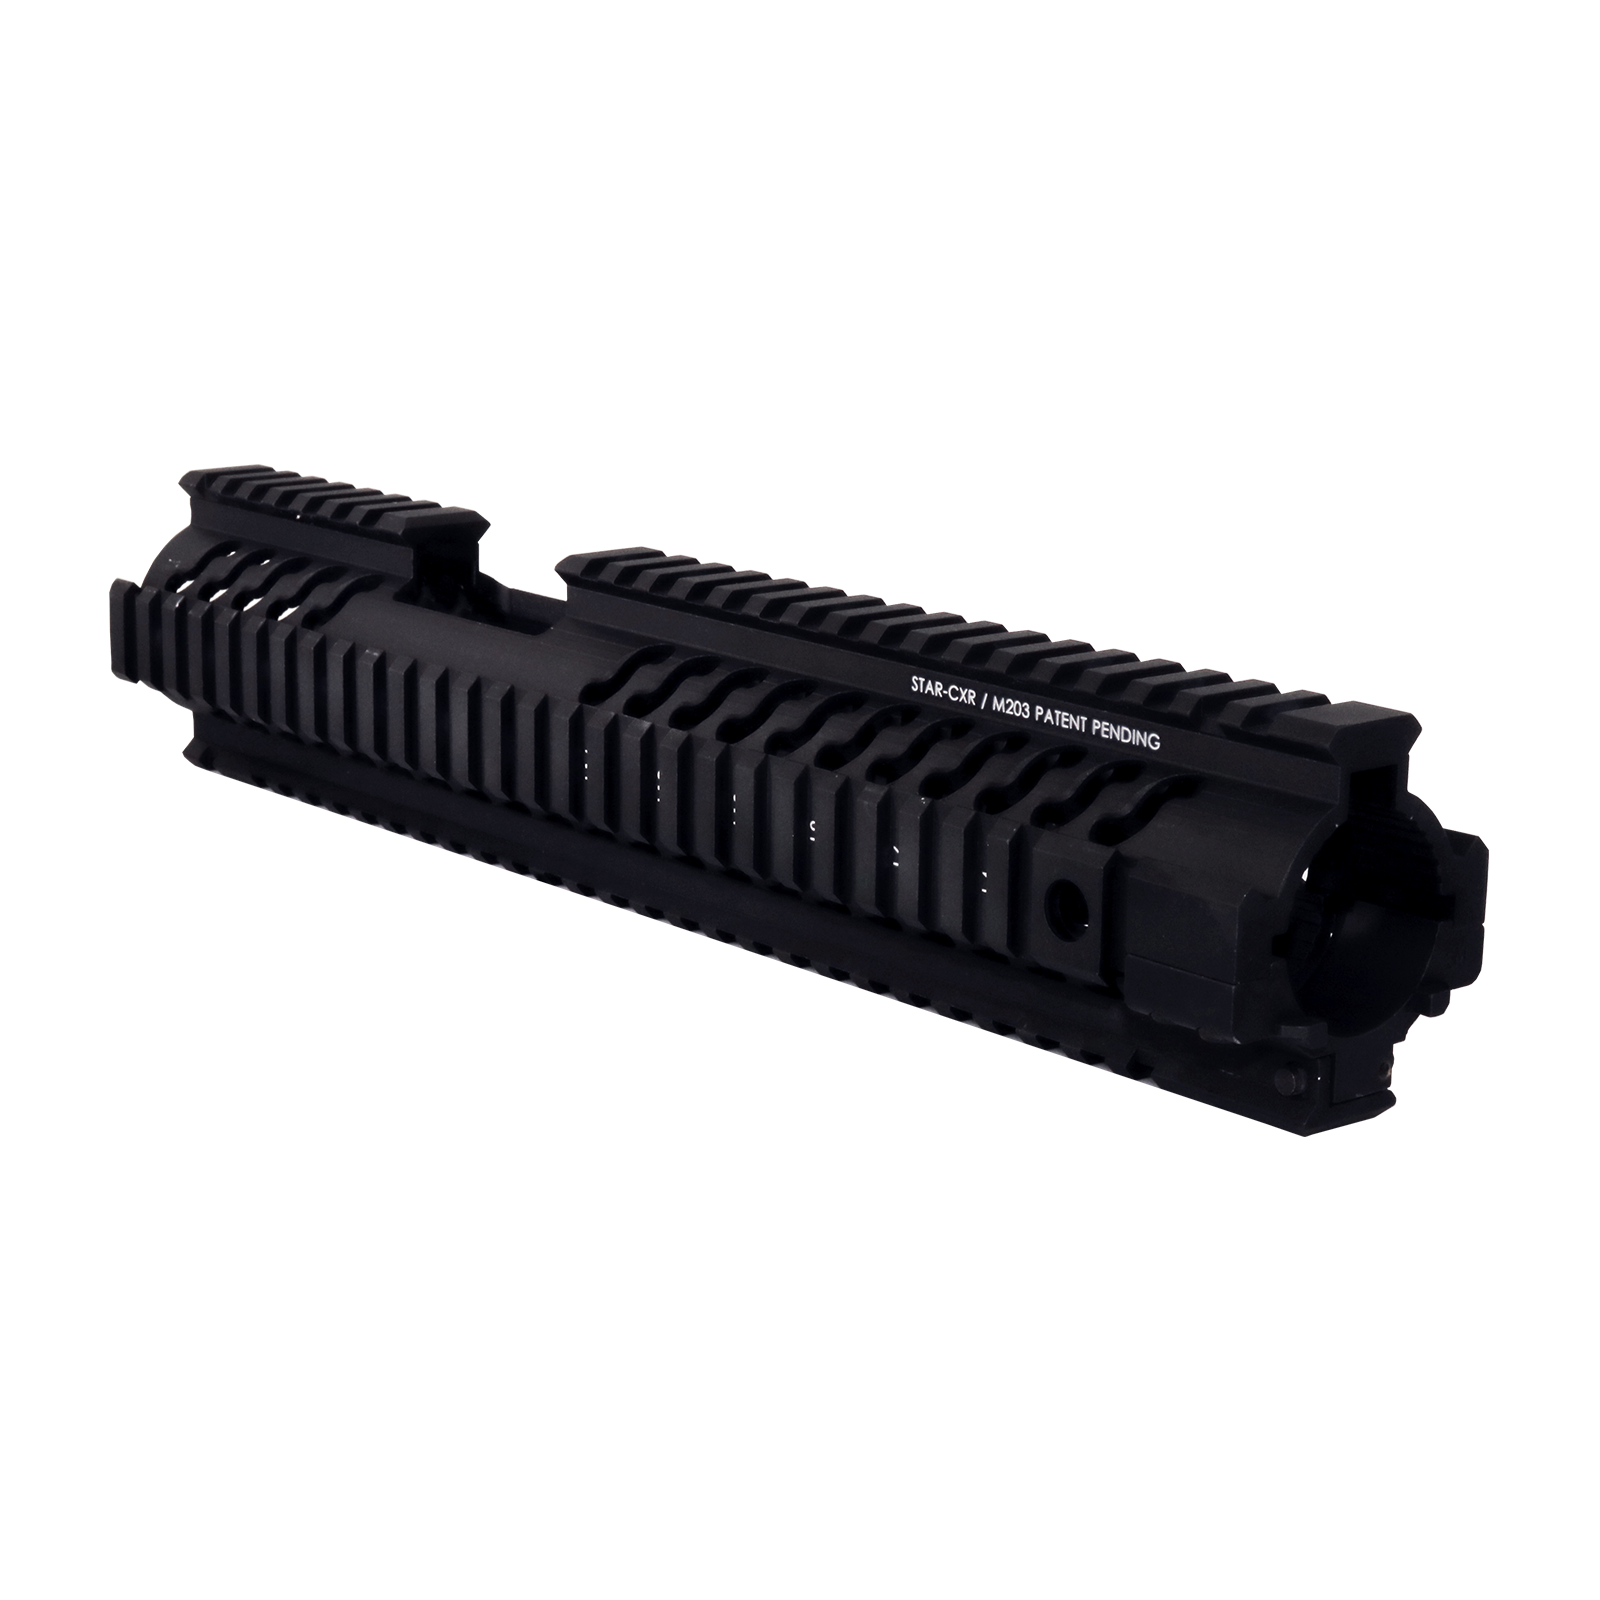 Samson STAR EXR Series AR-15 2-Piece Free-Float Handguard